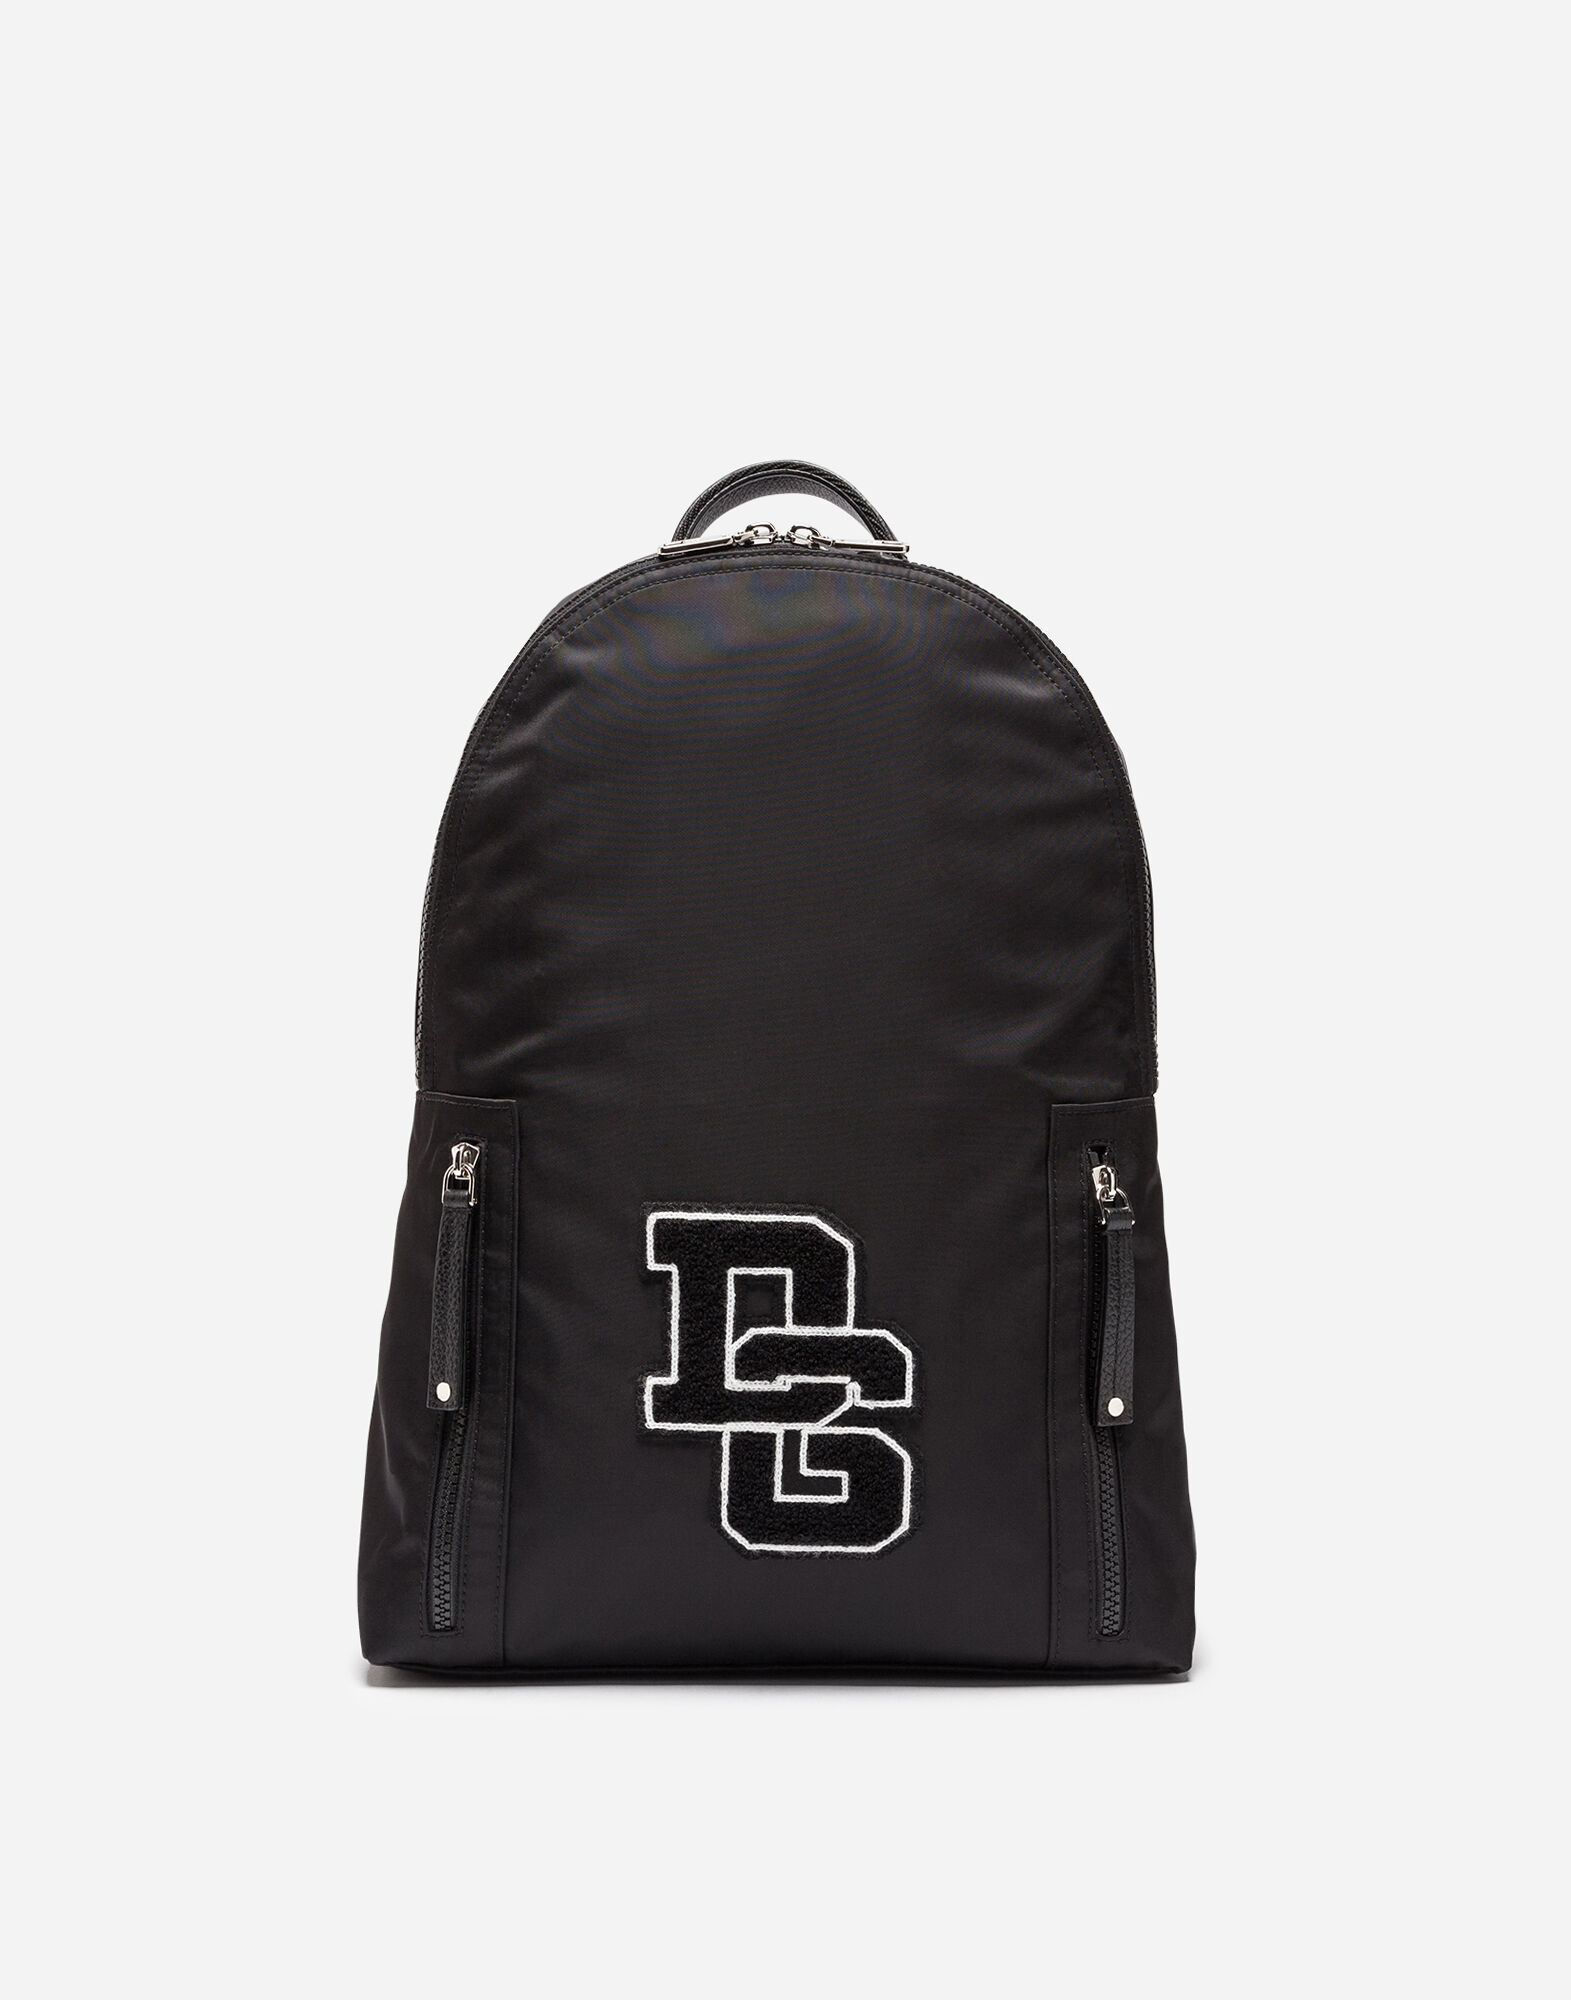 Dolce & Gabbana Logomania - VULCANO BACKPACK IN NYLON WITH LOGO PATCH